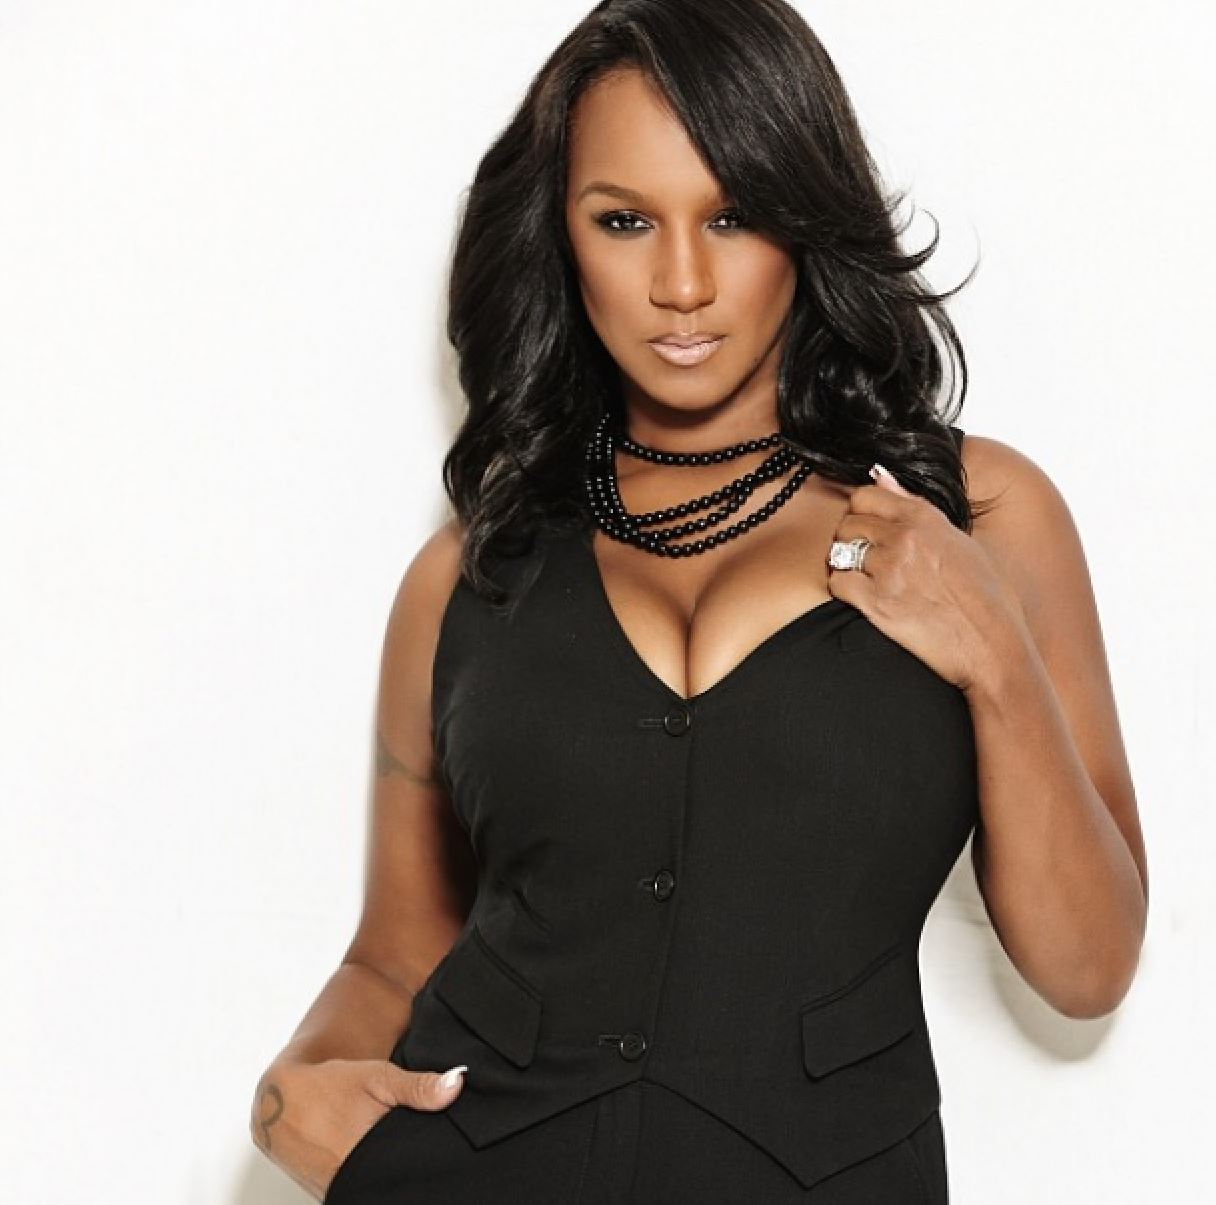 jackie christie biography basketball wives la who is jackie christie basketball wives la biography